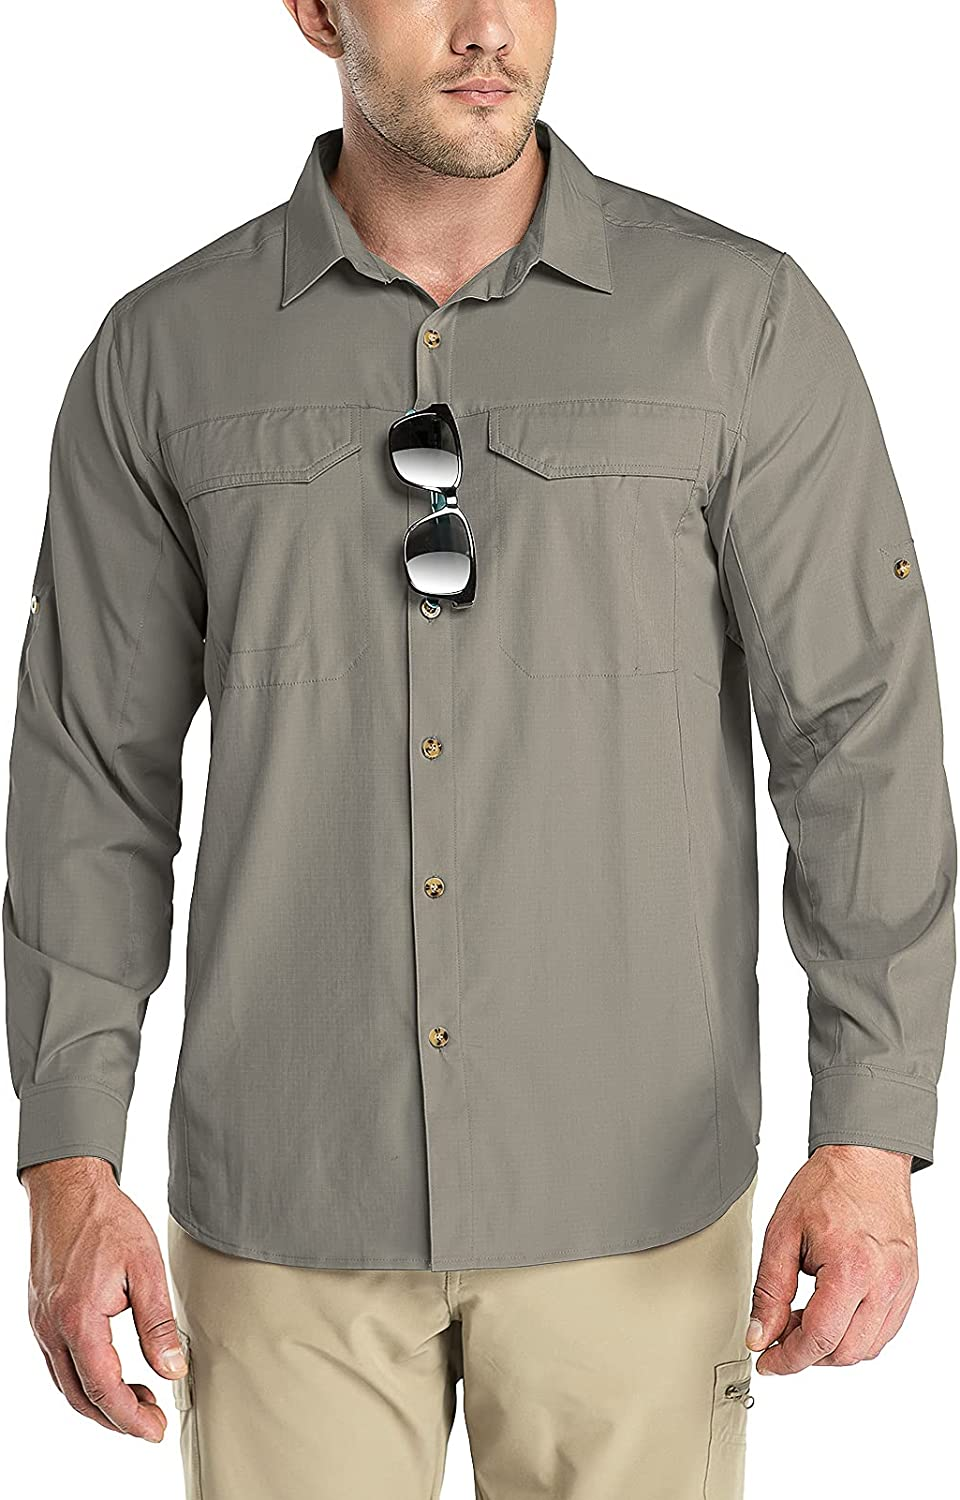 Outdoor Ventures free shipping Men's Long Sleeve Protection Co Lowest price challenge UV Shirt Hiking